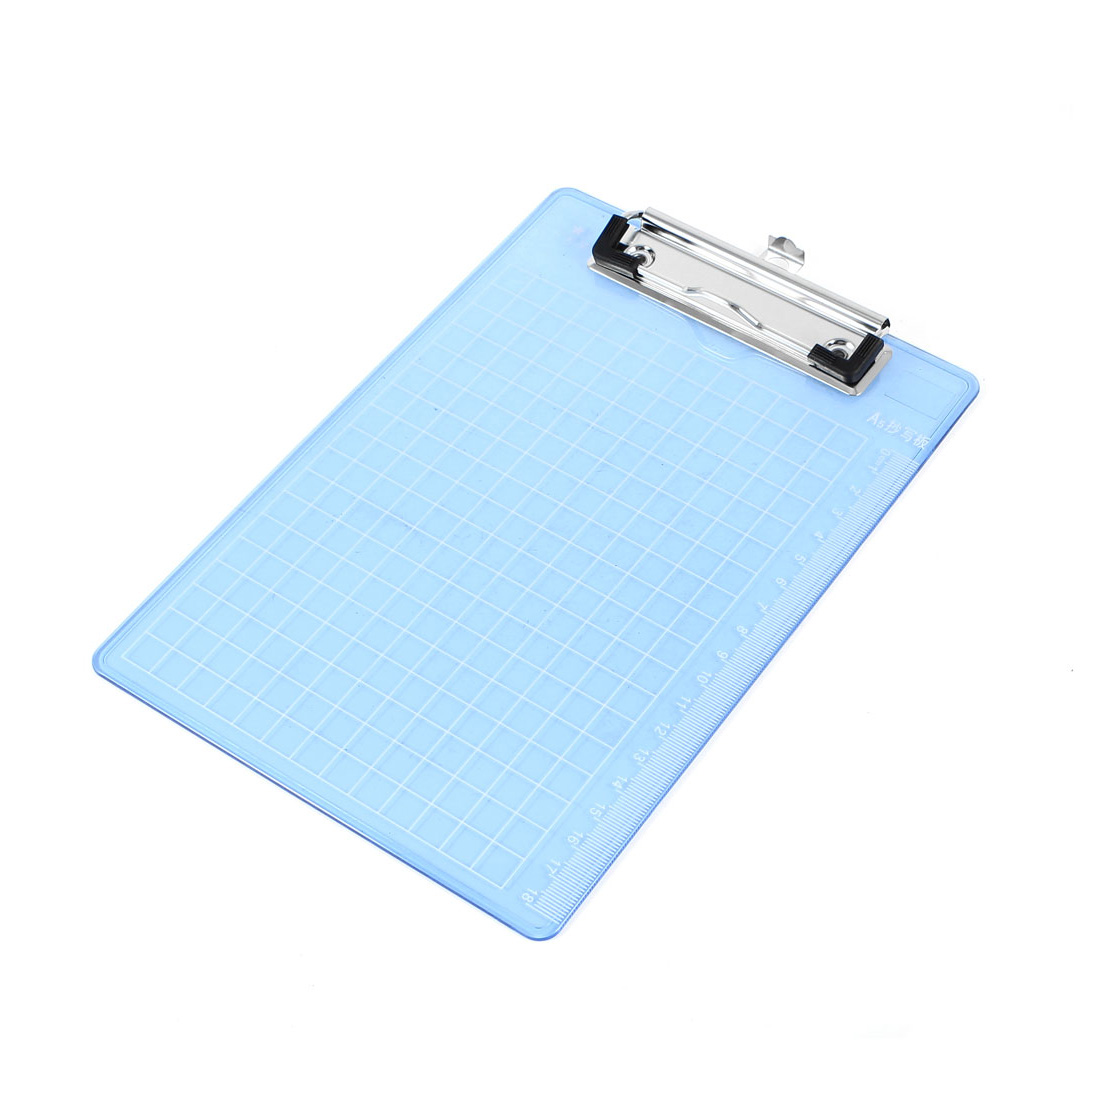 Office A5 Record List Note Paper Clear Blue Clipboard Clip Board